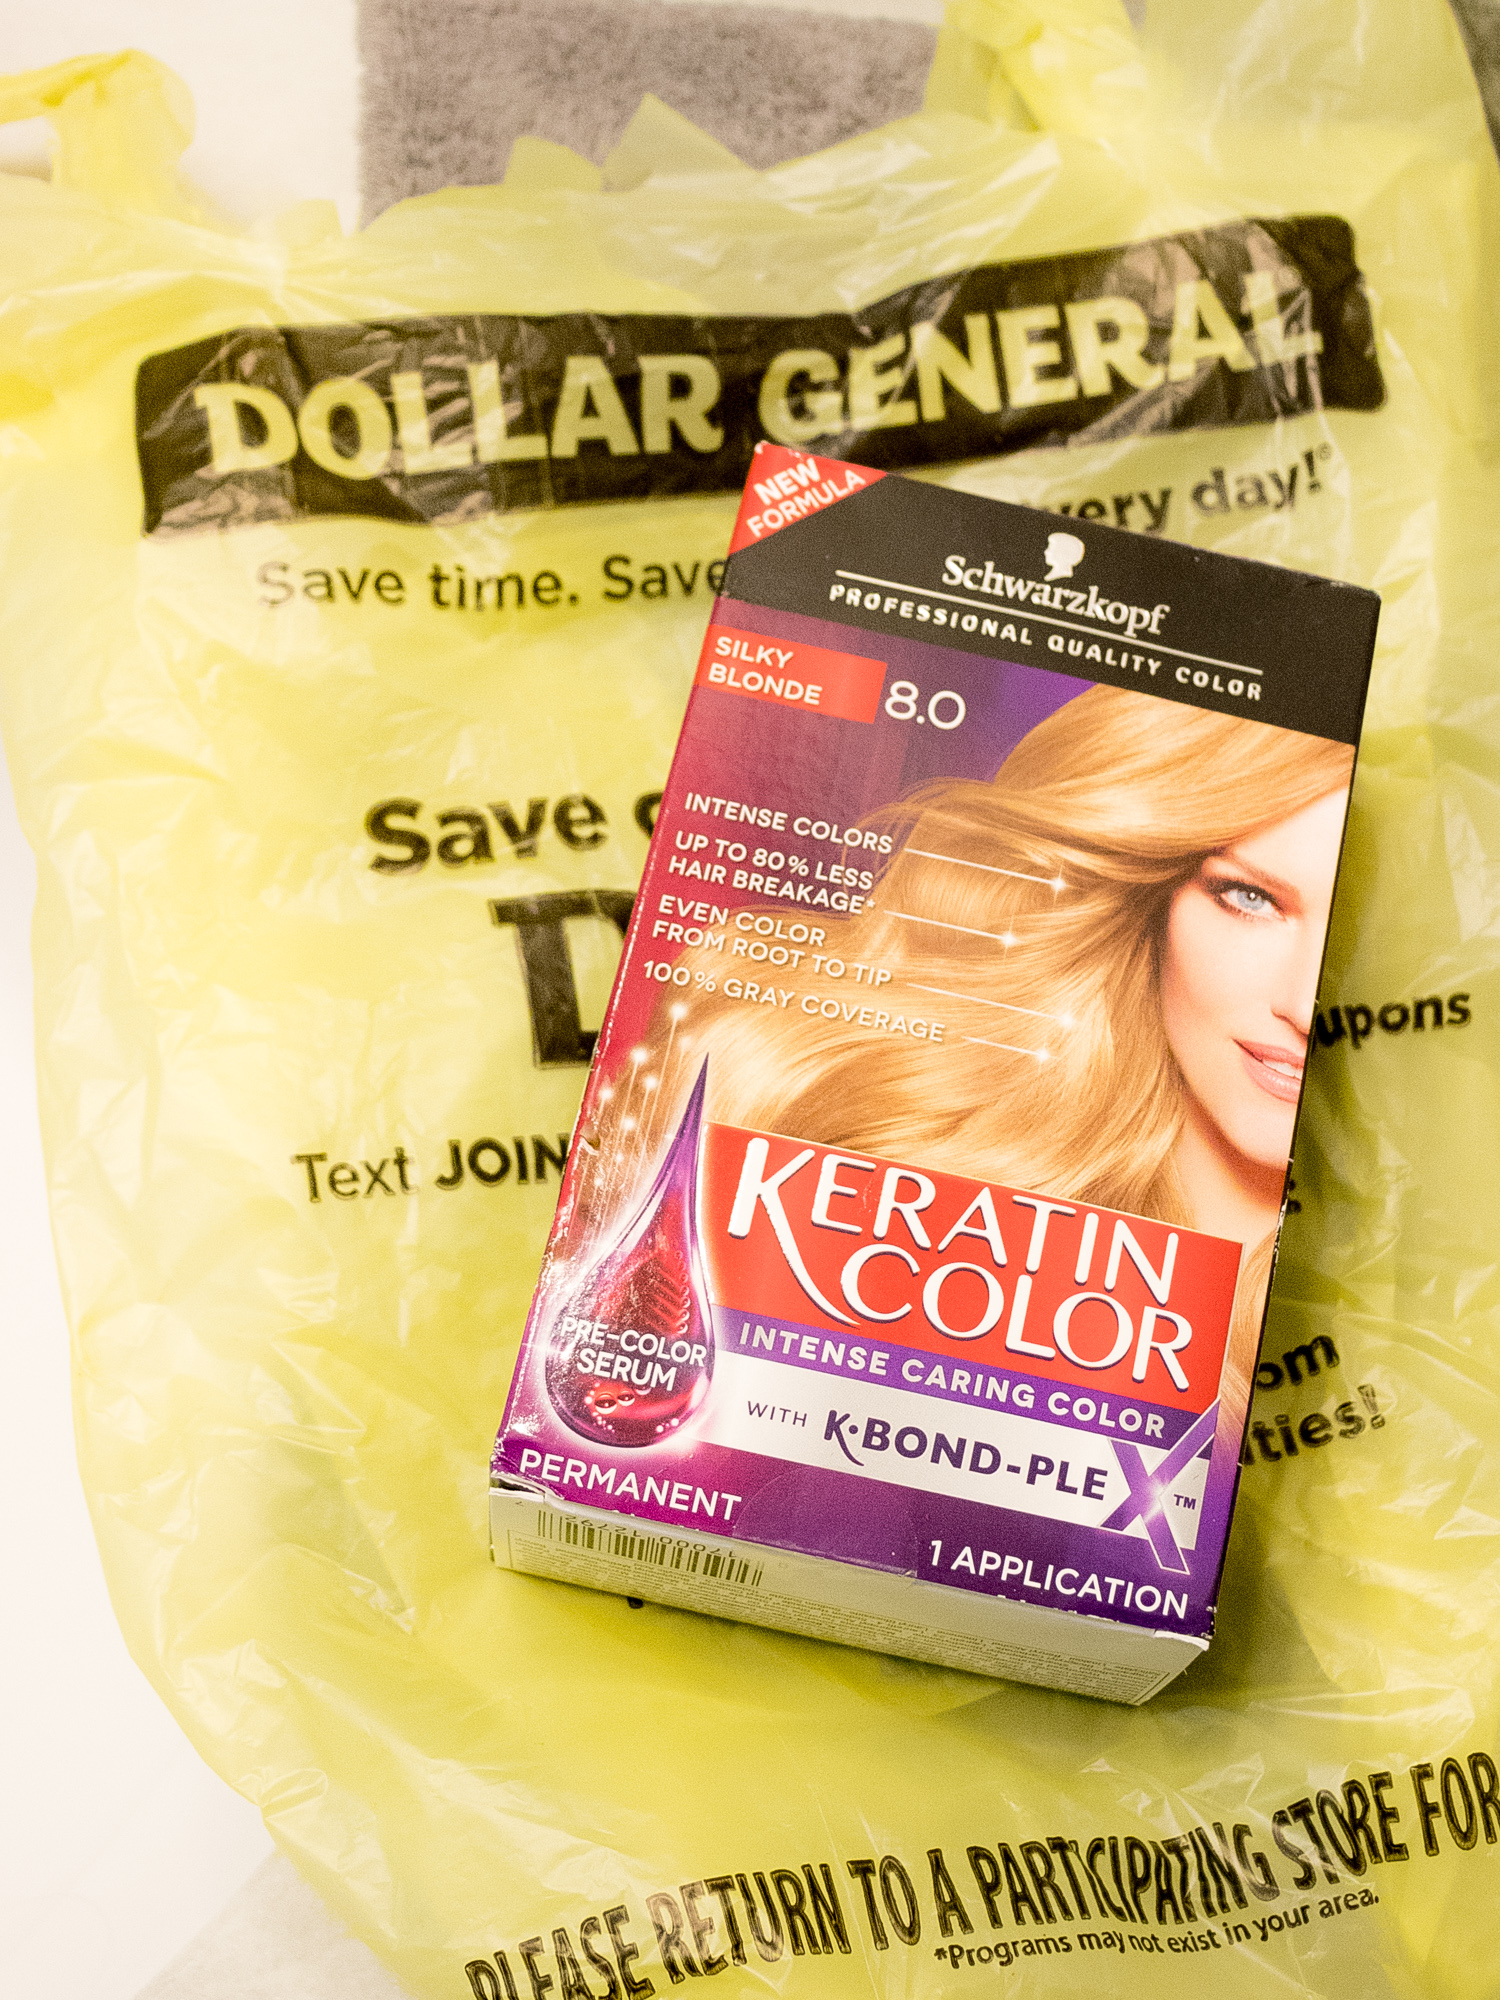 Keratin Color at Dollar General